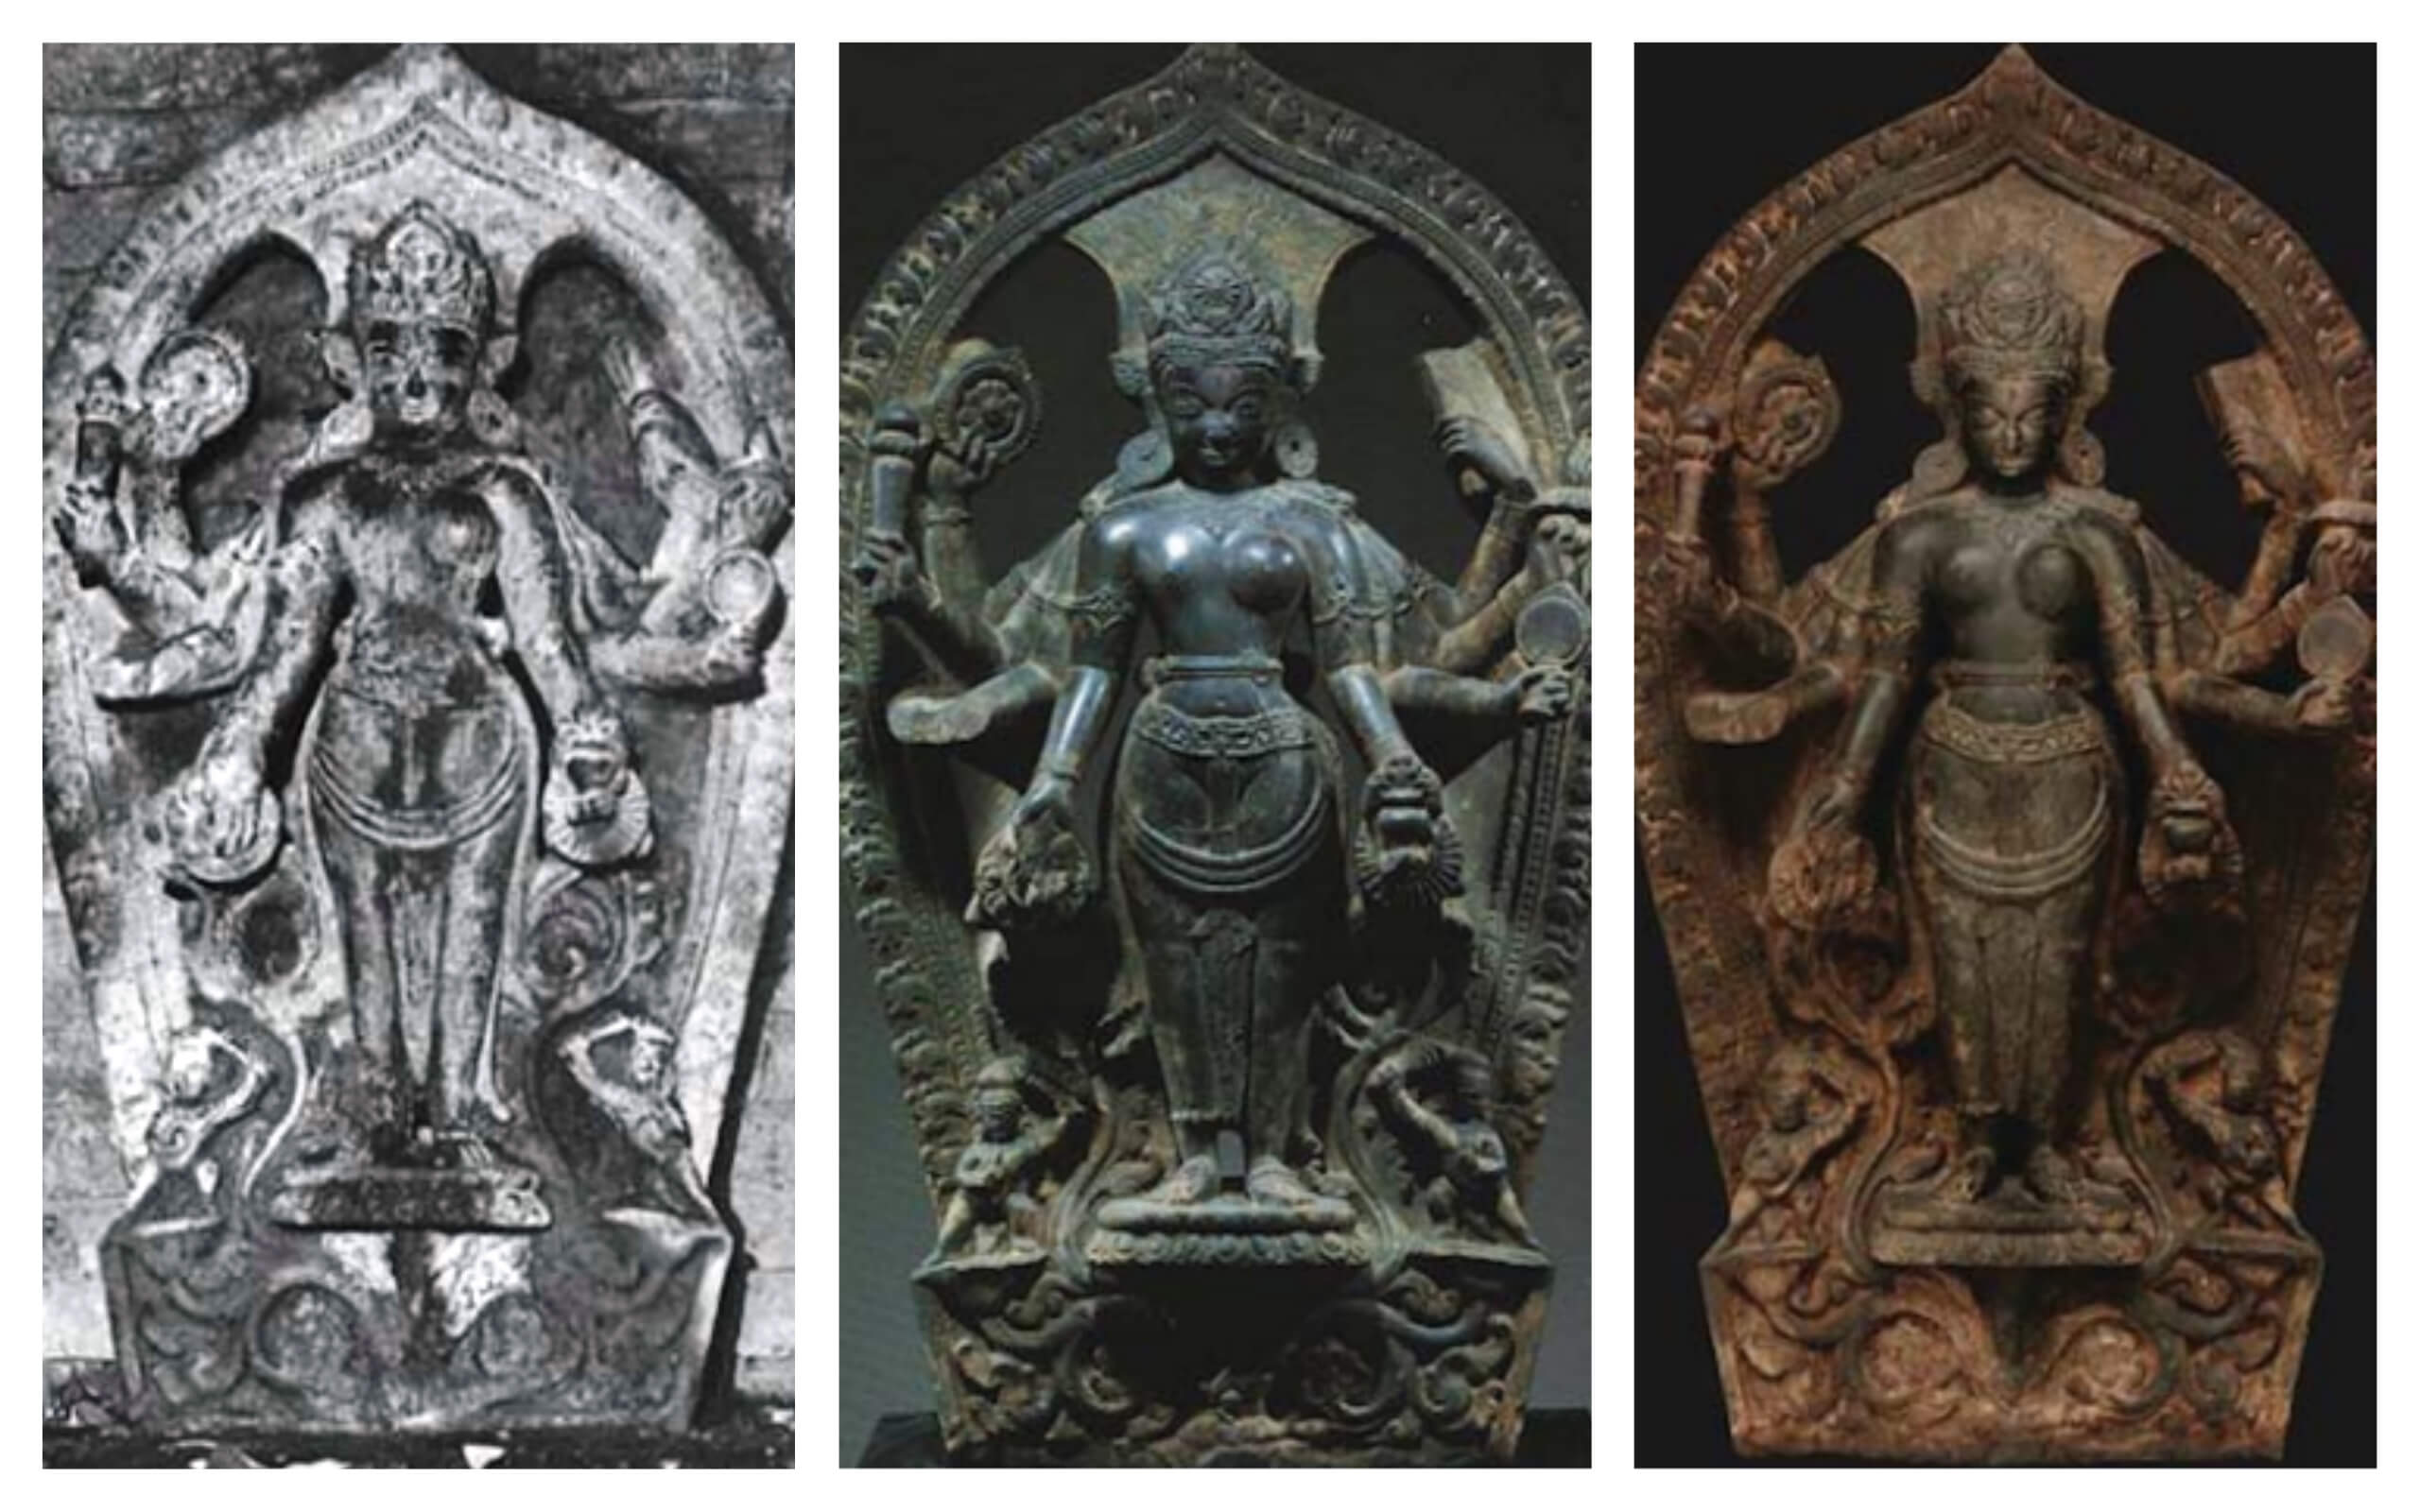 Nepal's gods return from exile